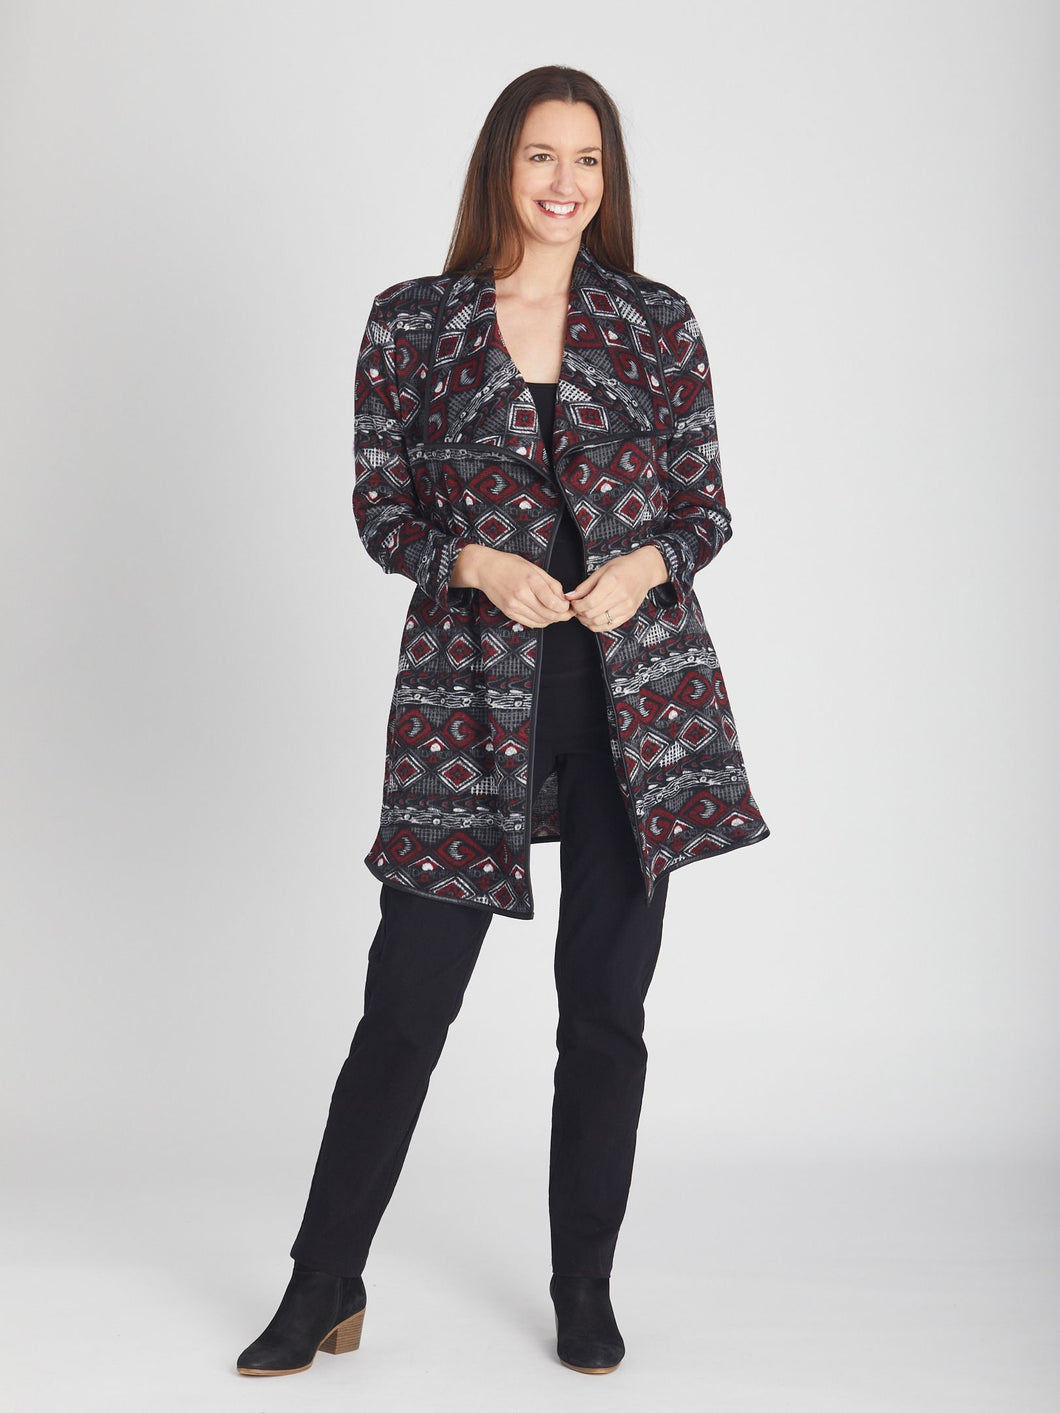 Cordelia st - Artic Snuggle Jacket Ruby - MCJ25931